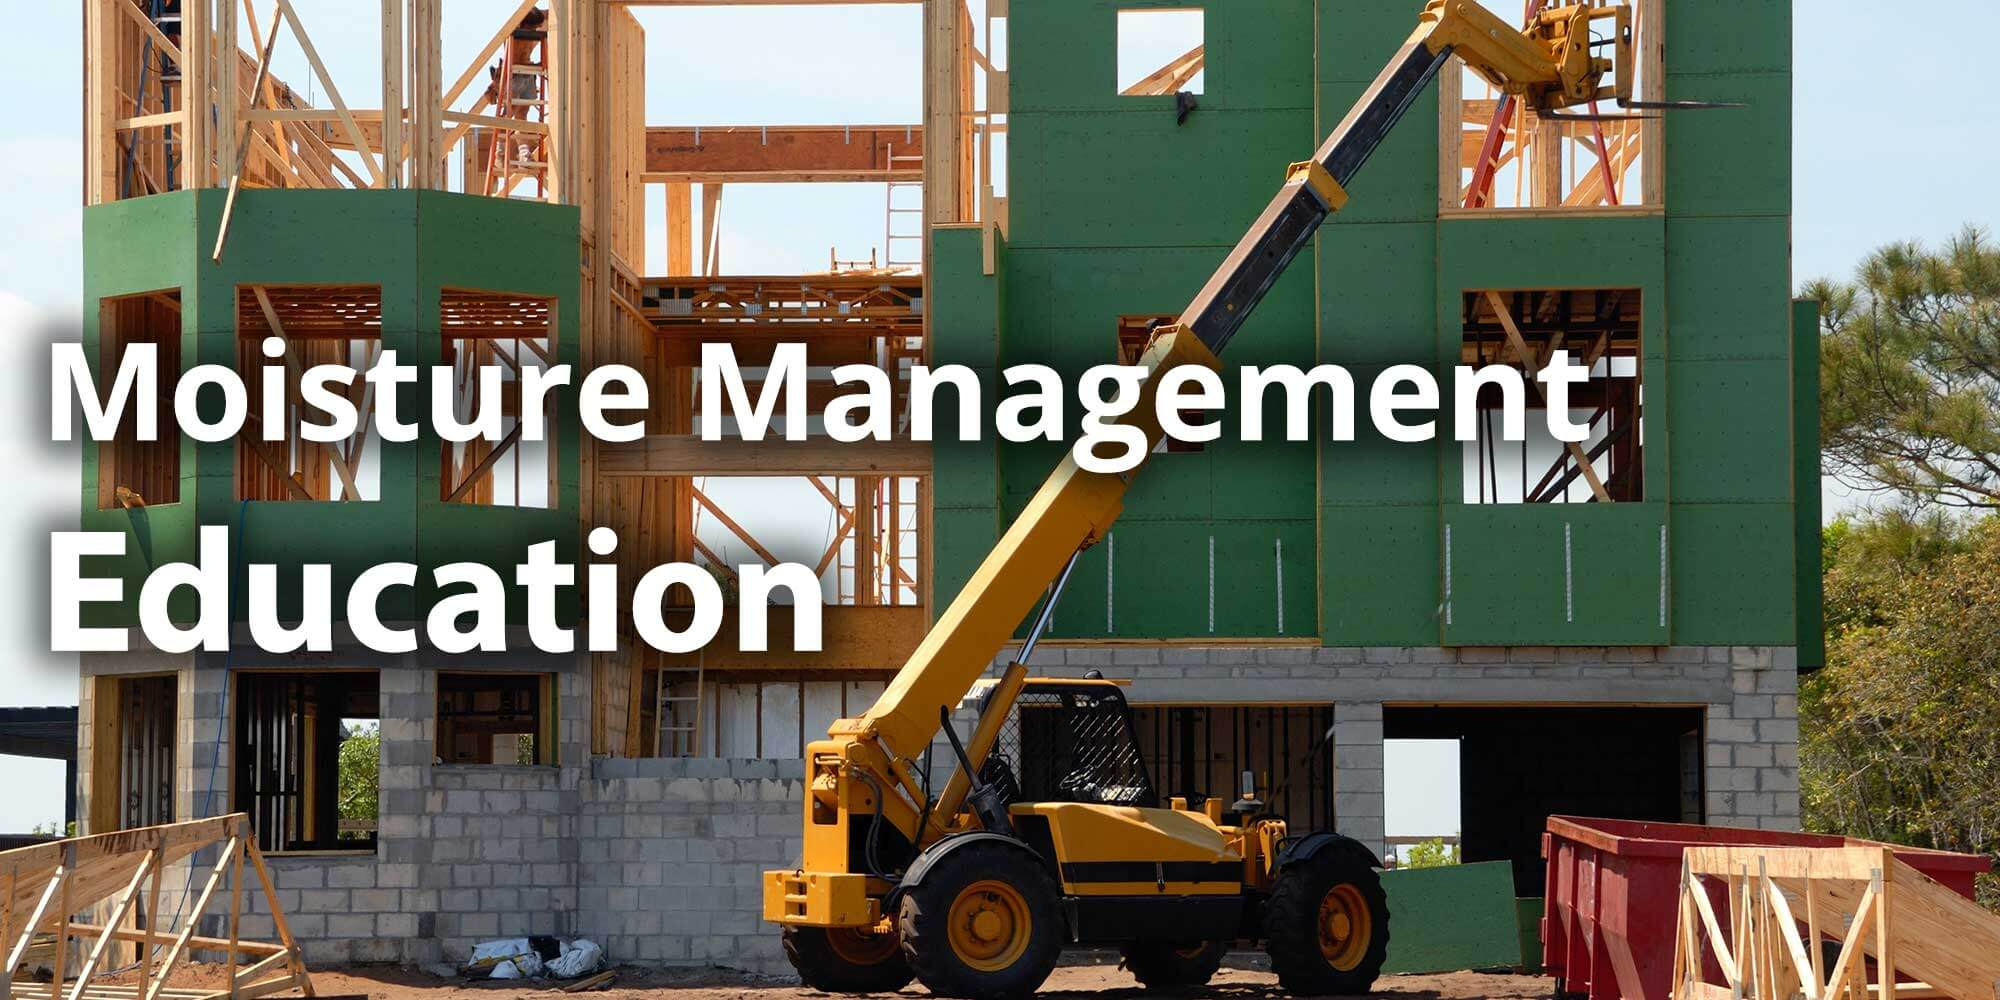 Moisture Management Education